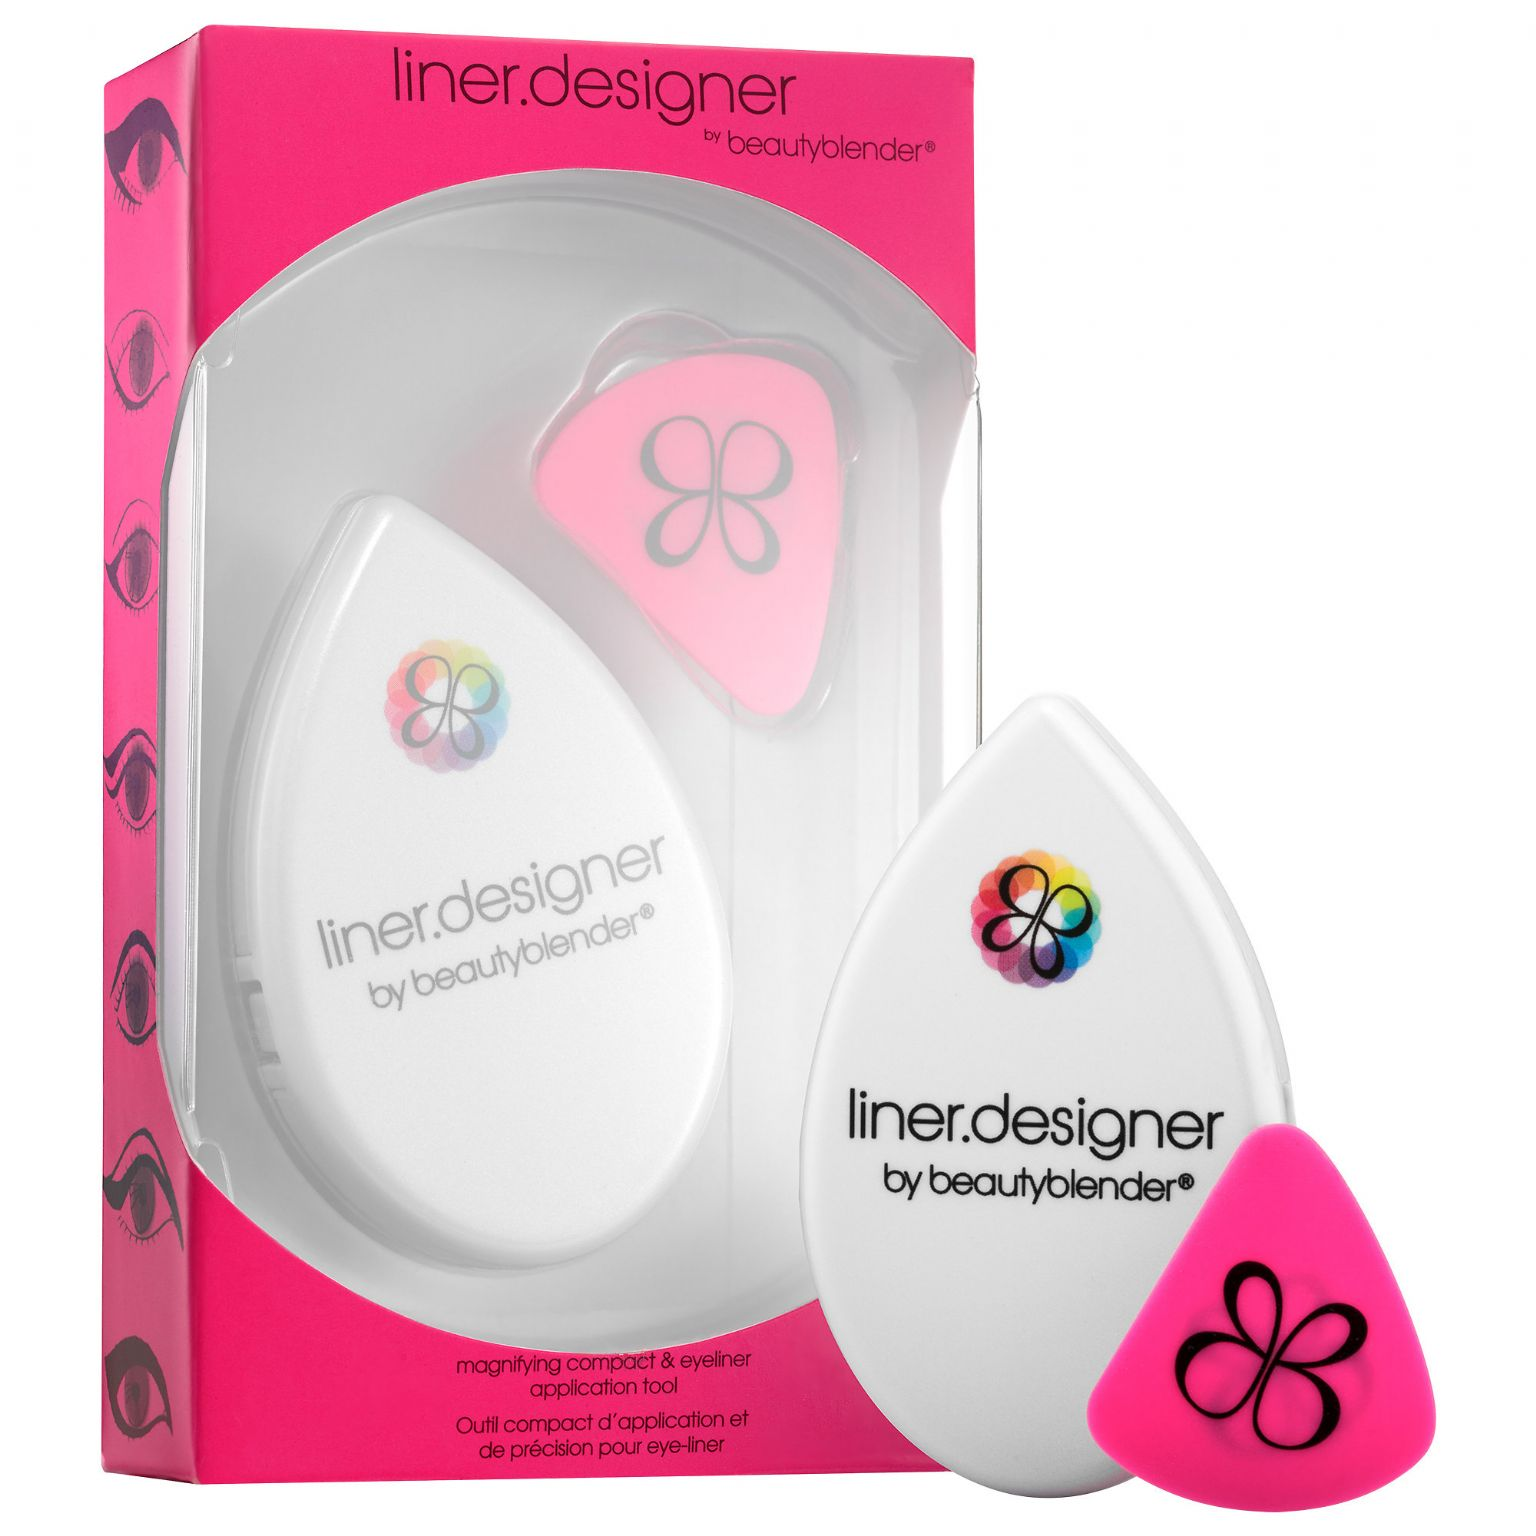 Image result for beautyblender liner designer